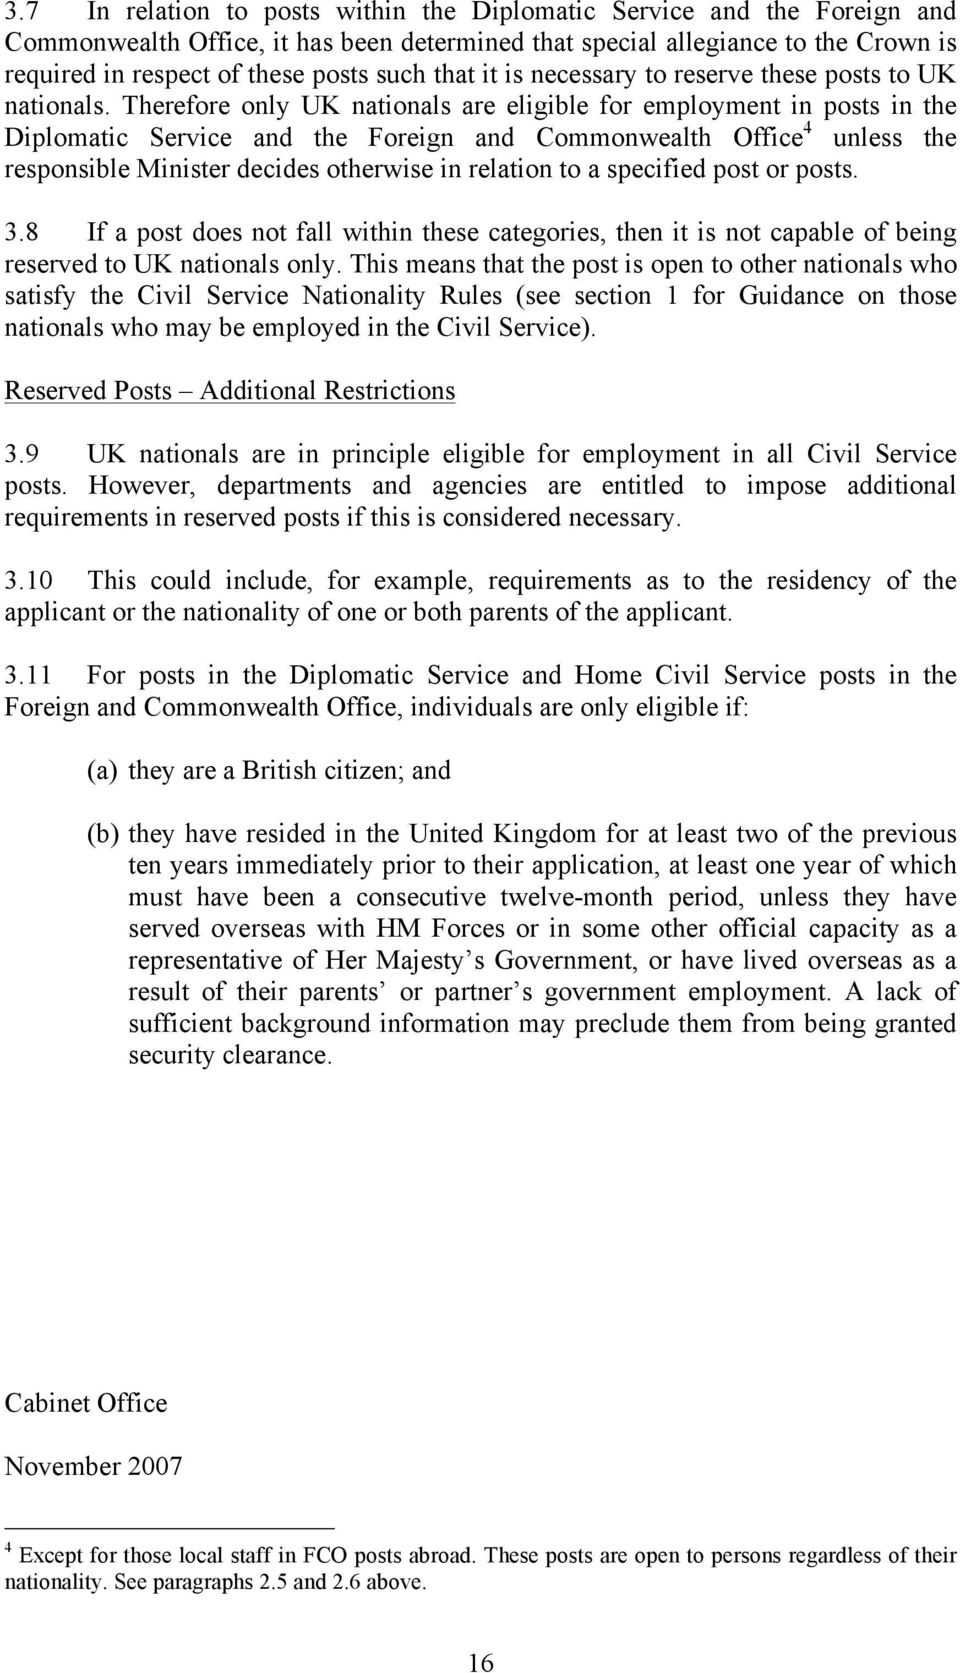 Therefore only UK nationals are eligible for employment in posts in the Diplomatic Service and the Foreign and Commonwealth Office 4 unless the responsible Minister decides otherwise in relation to a